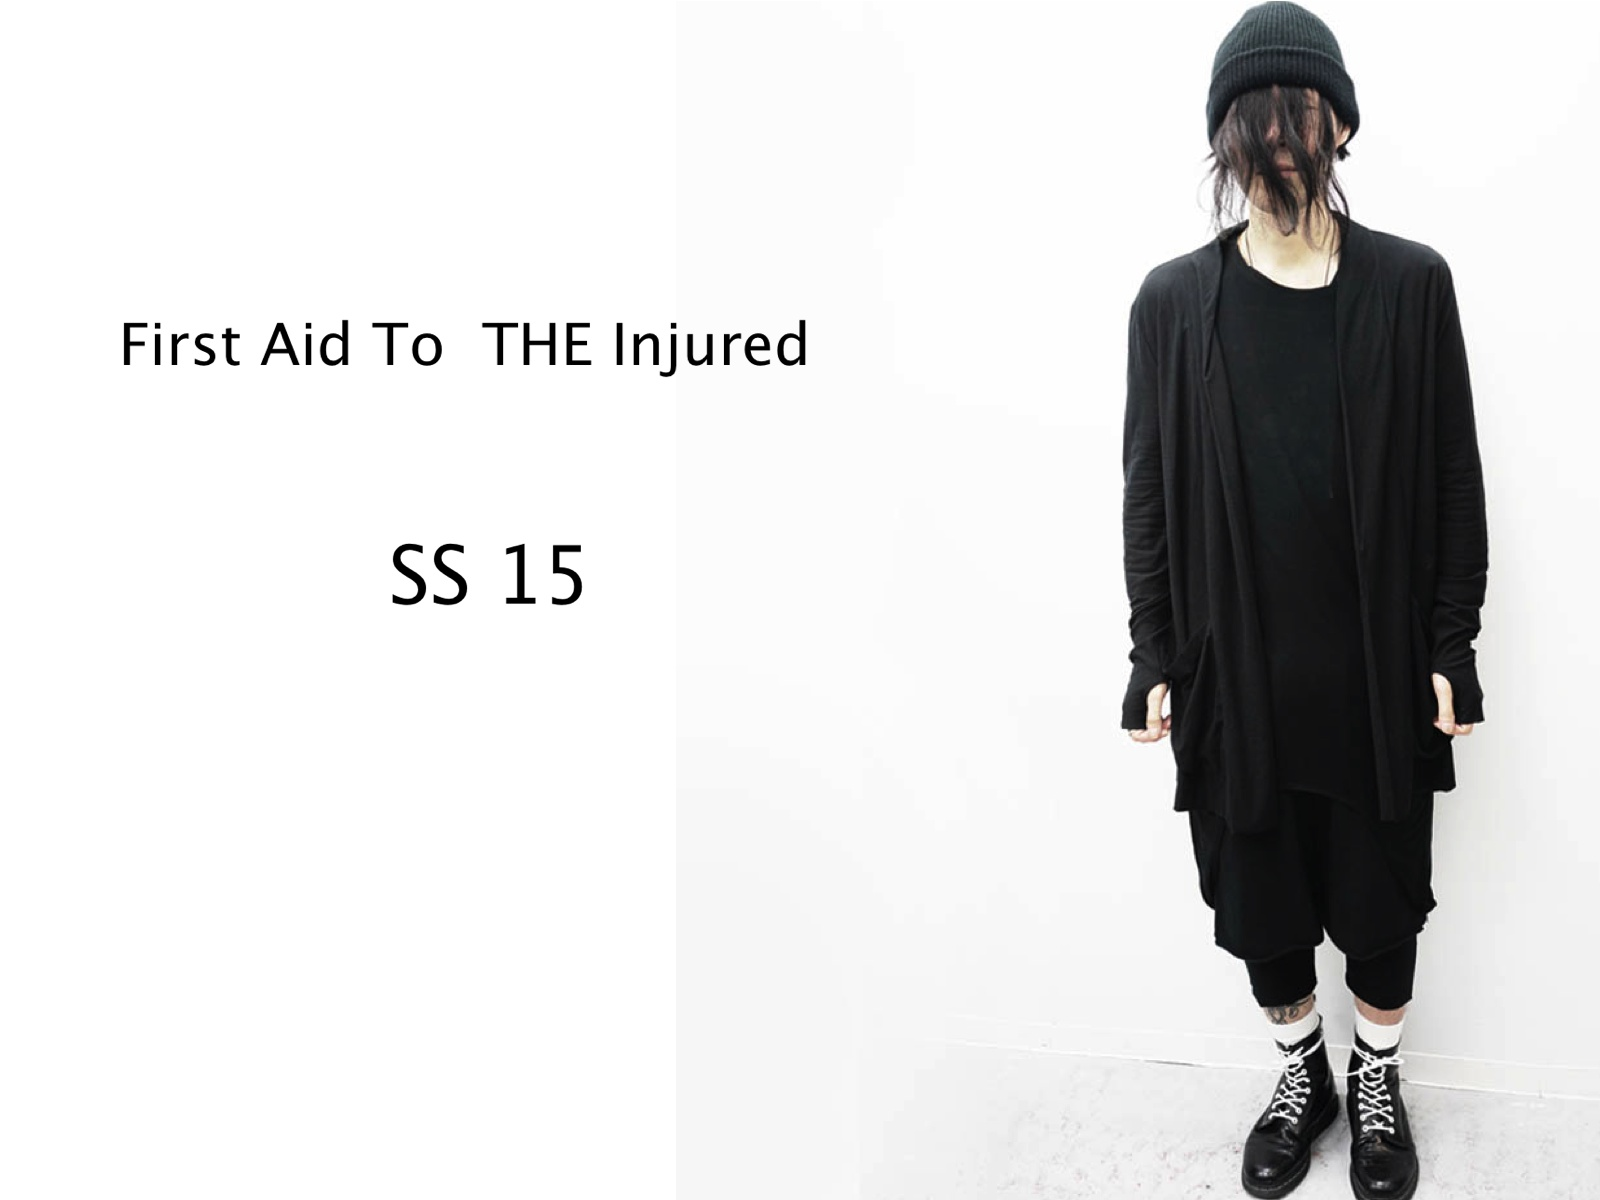 FIRST AID TO THE INJURED SS15 ITEM